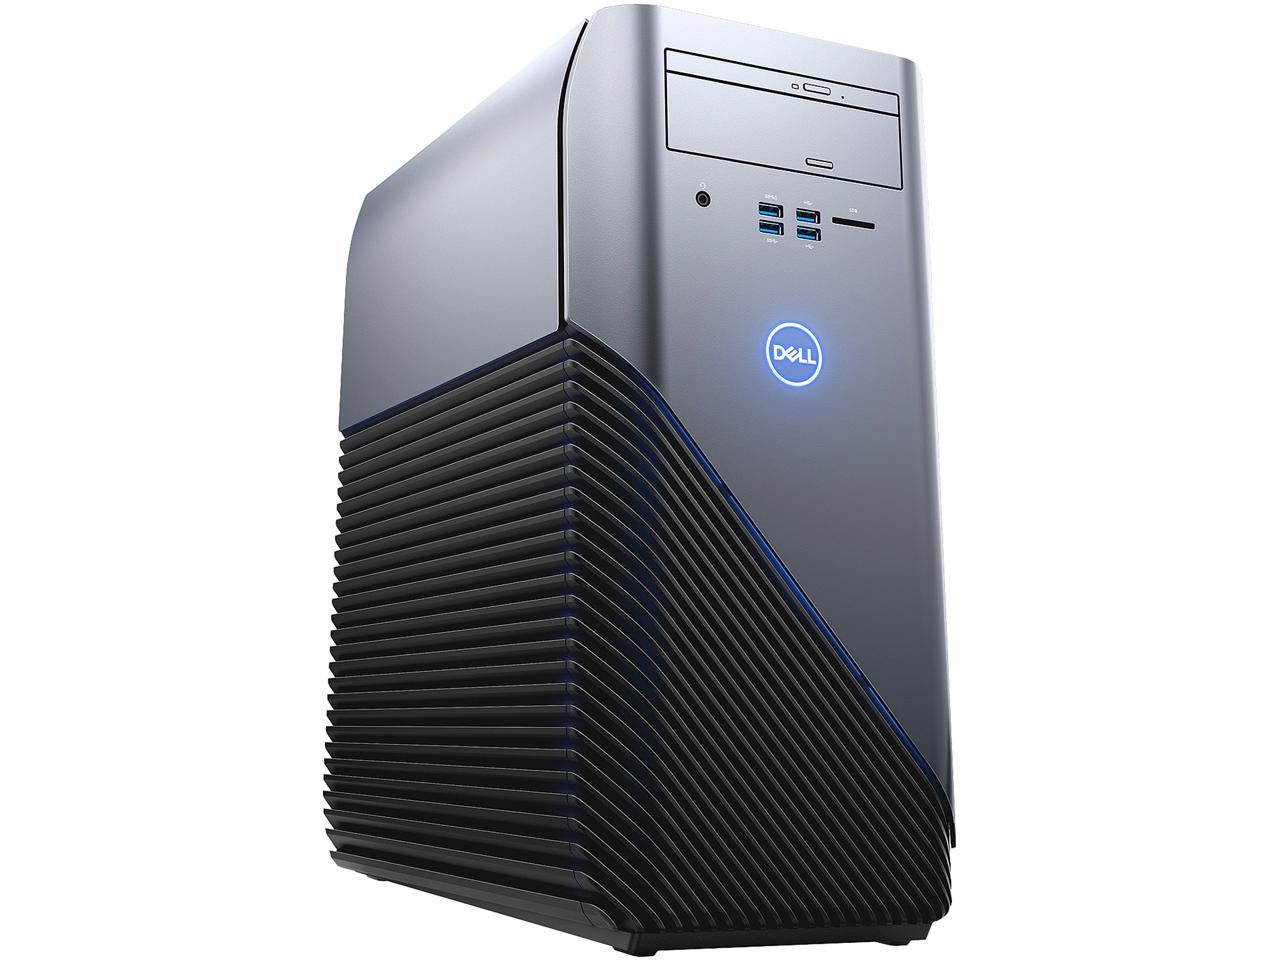 Dell Inspiron 5675 AMD Core Ryzen 7 1700X Desktop